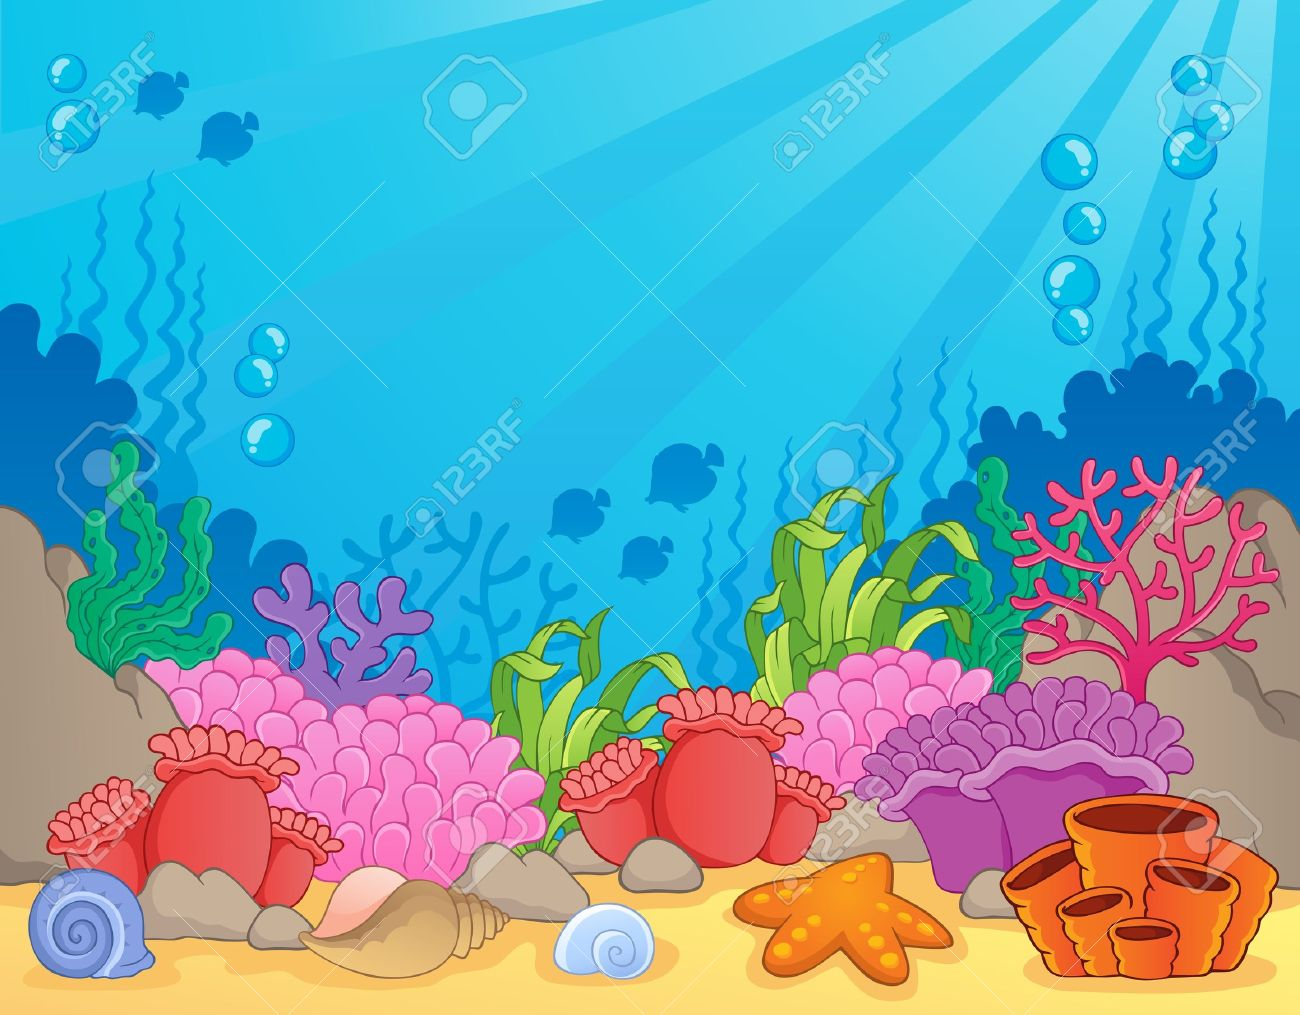 coral reef theme image 4 vector illustration royalty free cliparts